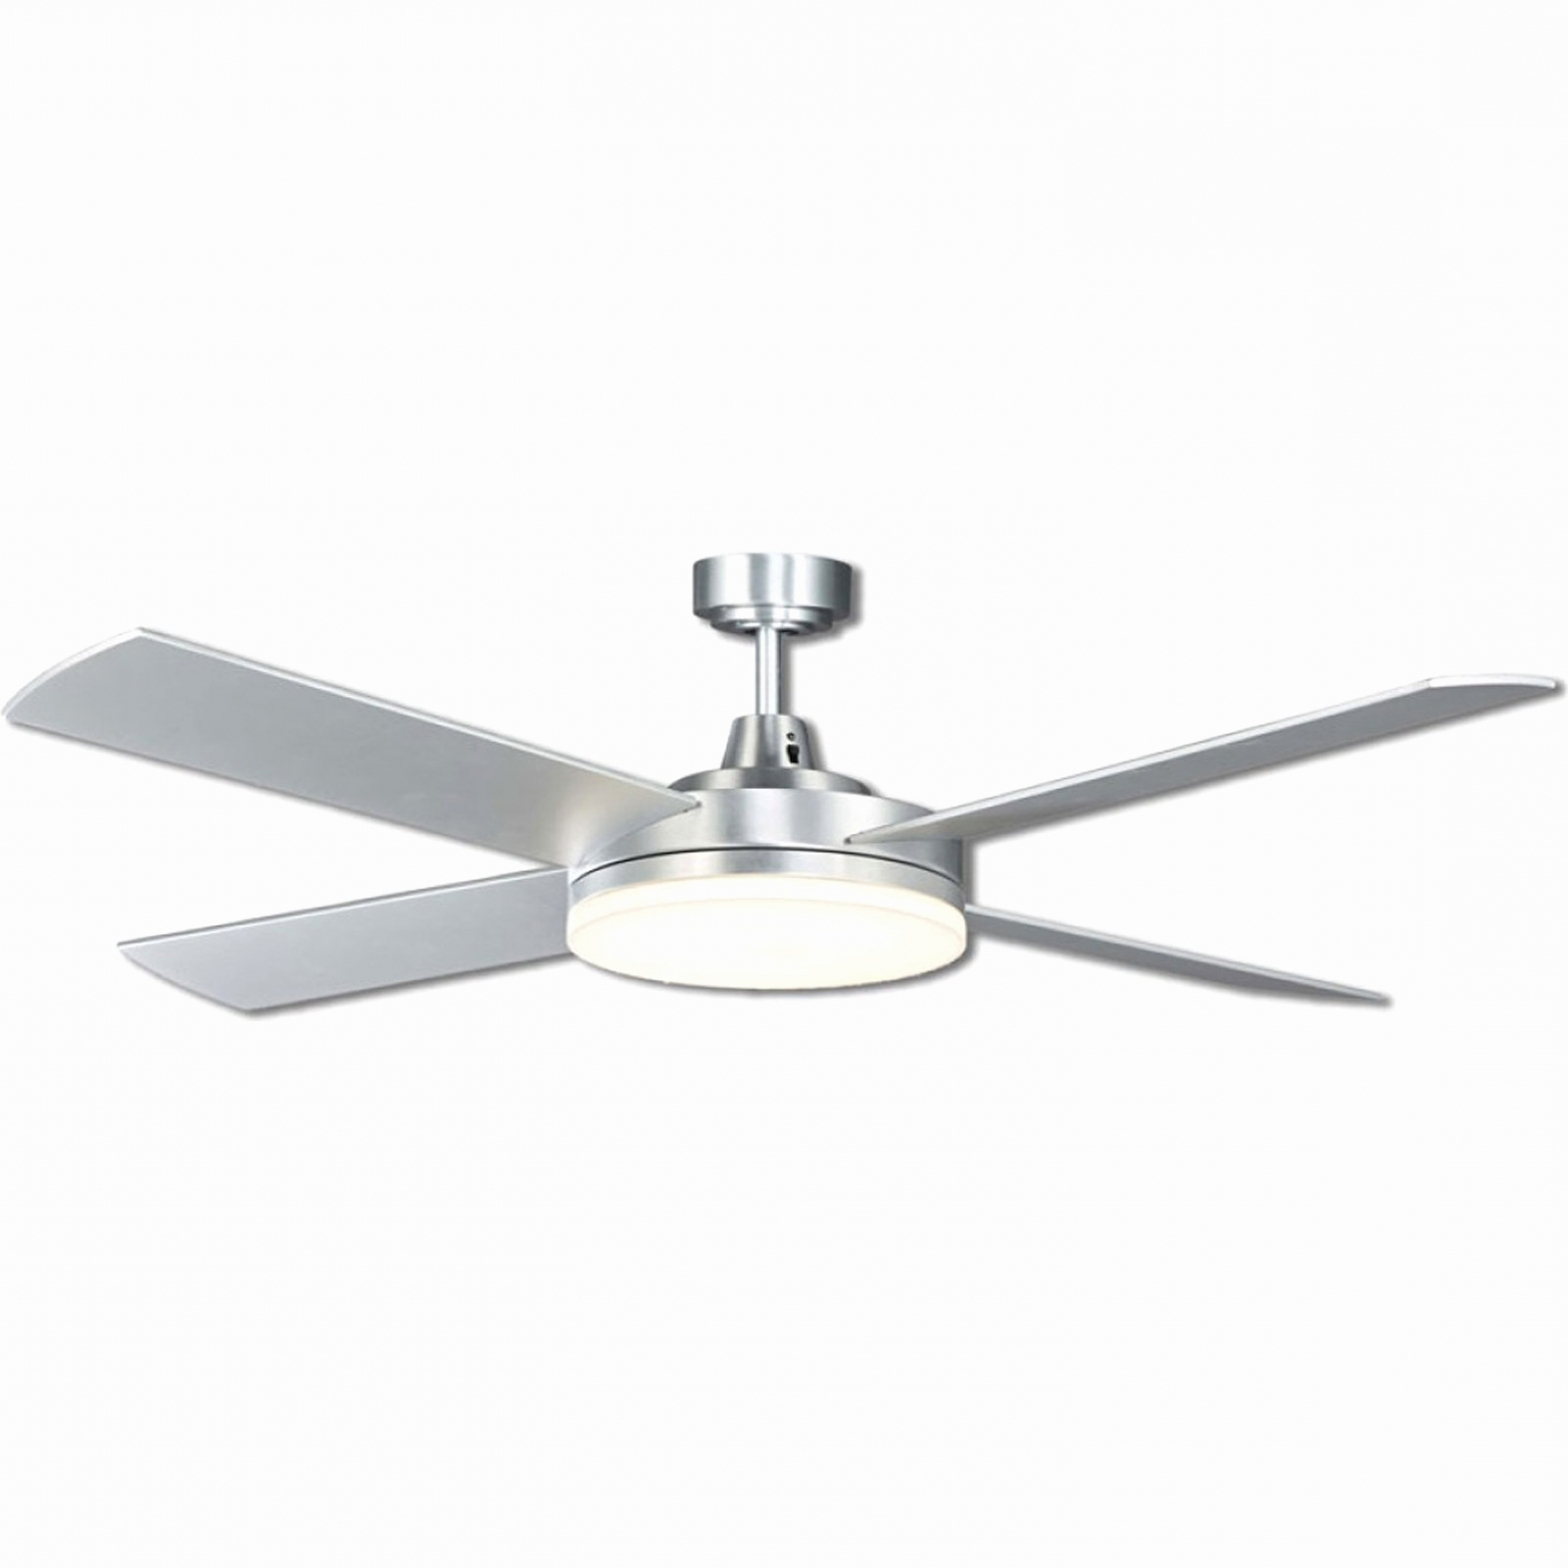 Tips: Outdoor Ceiling Fans With Lights Wet Rated Contemporary Intended For Most Recent Wet Rated Outdoor Ceiling Fans With Light (Gallery 17 of 20)